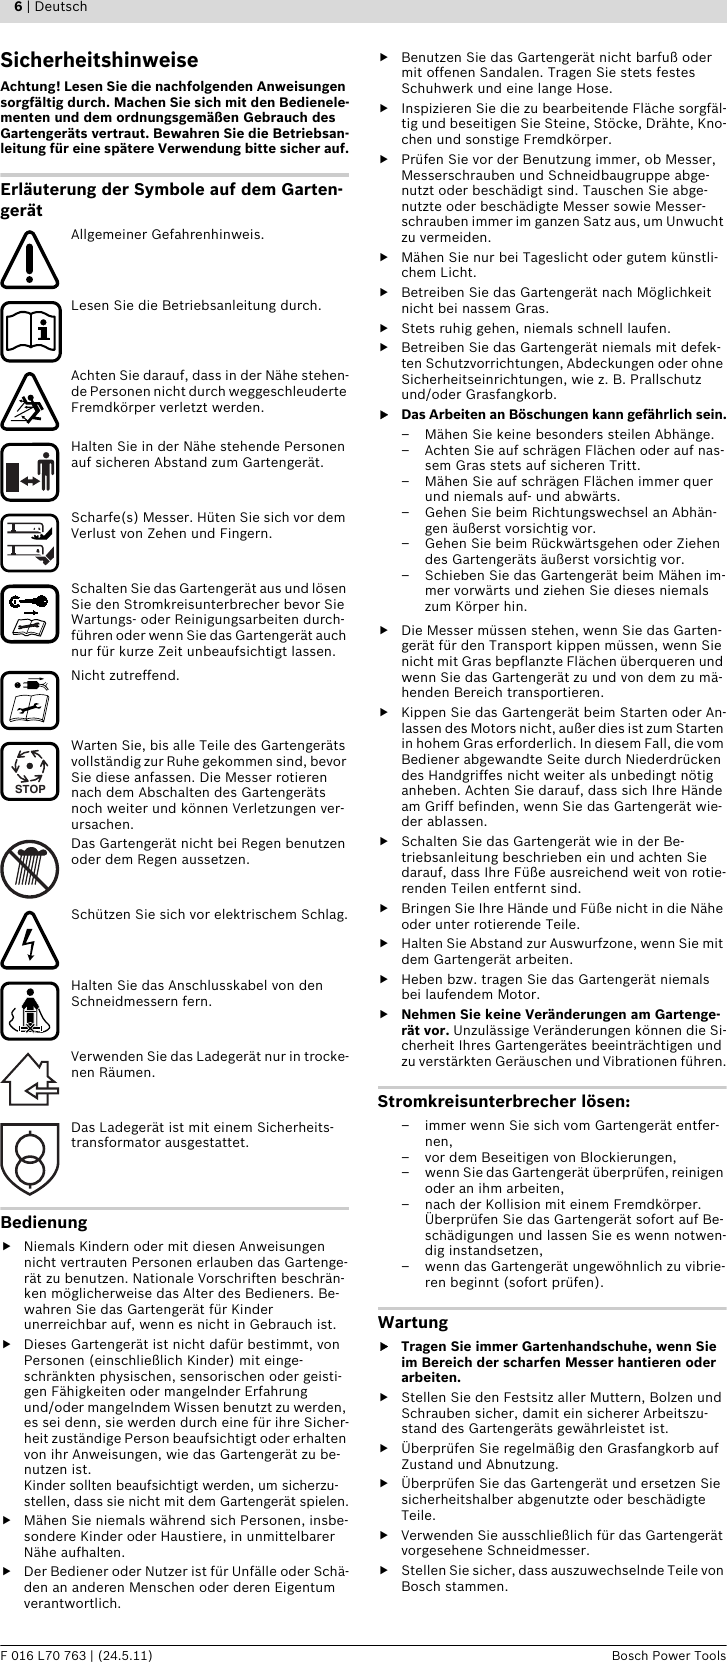 User Guide Page 6